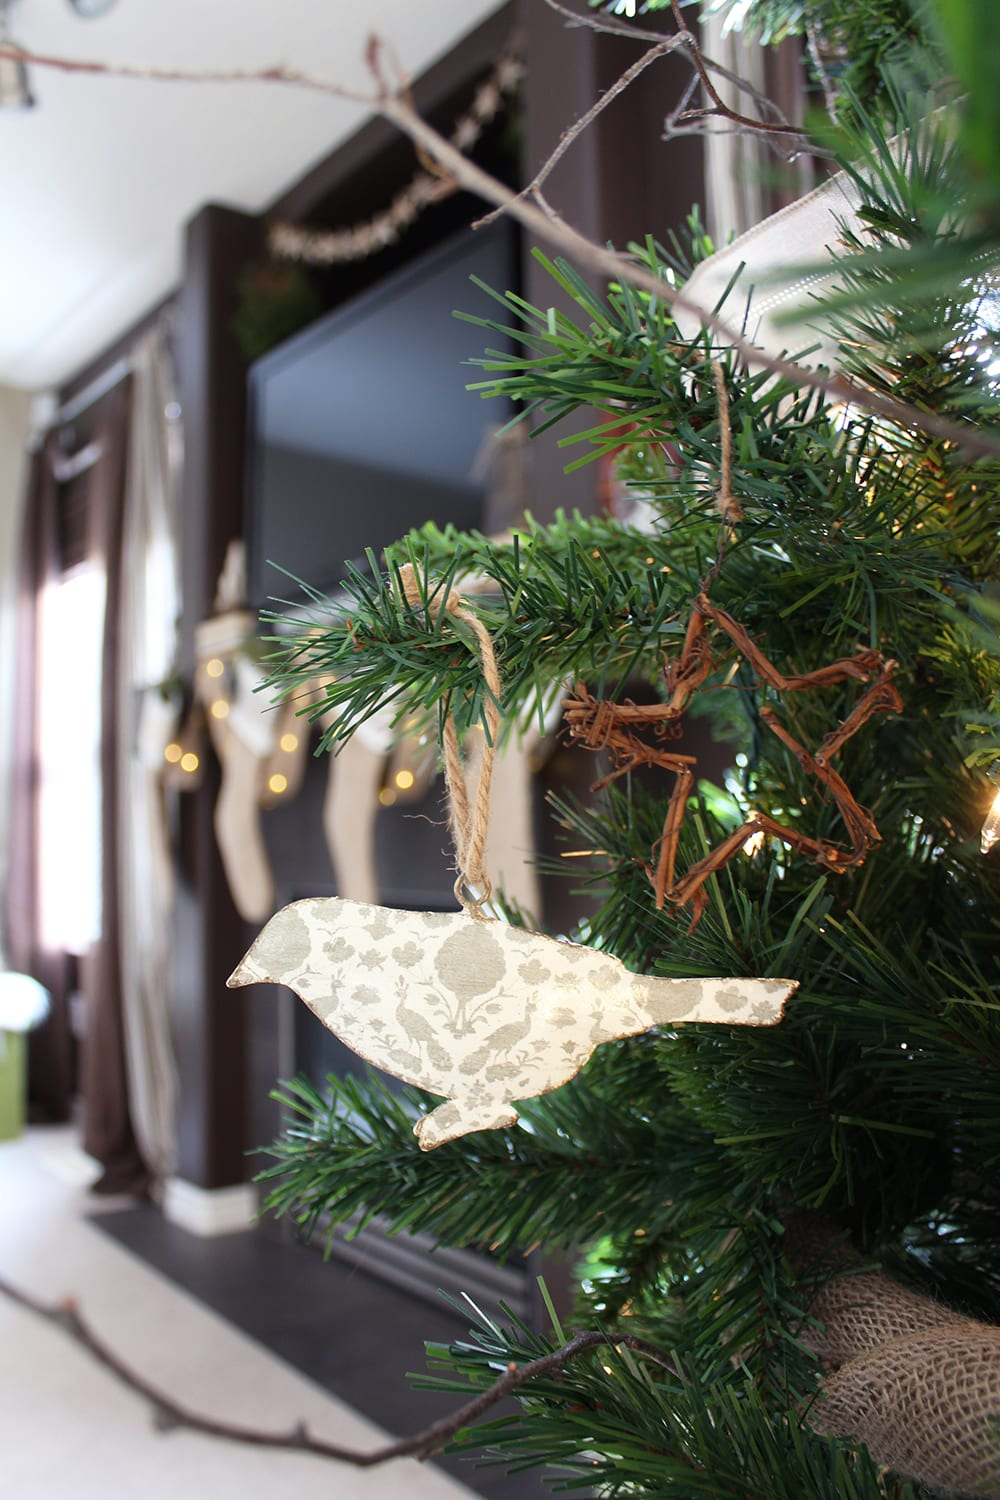 Nature inspired holiday decor featuring bird and star ornaments on a faux Christmas tree with real birch branches.